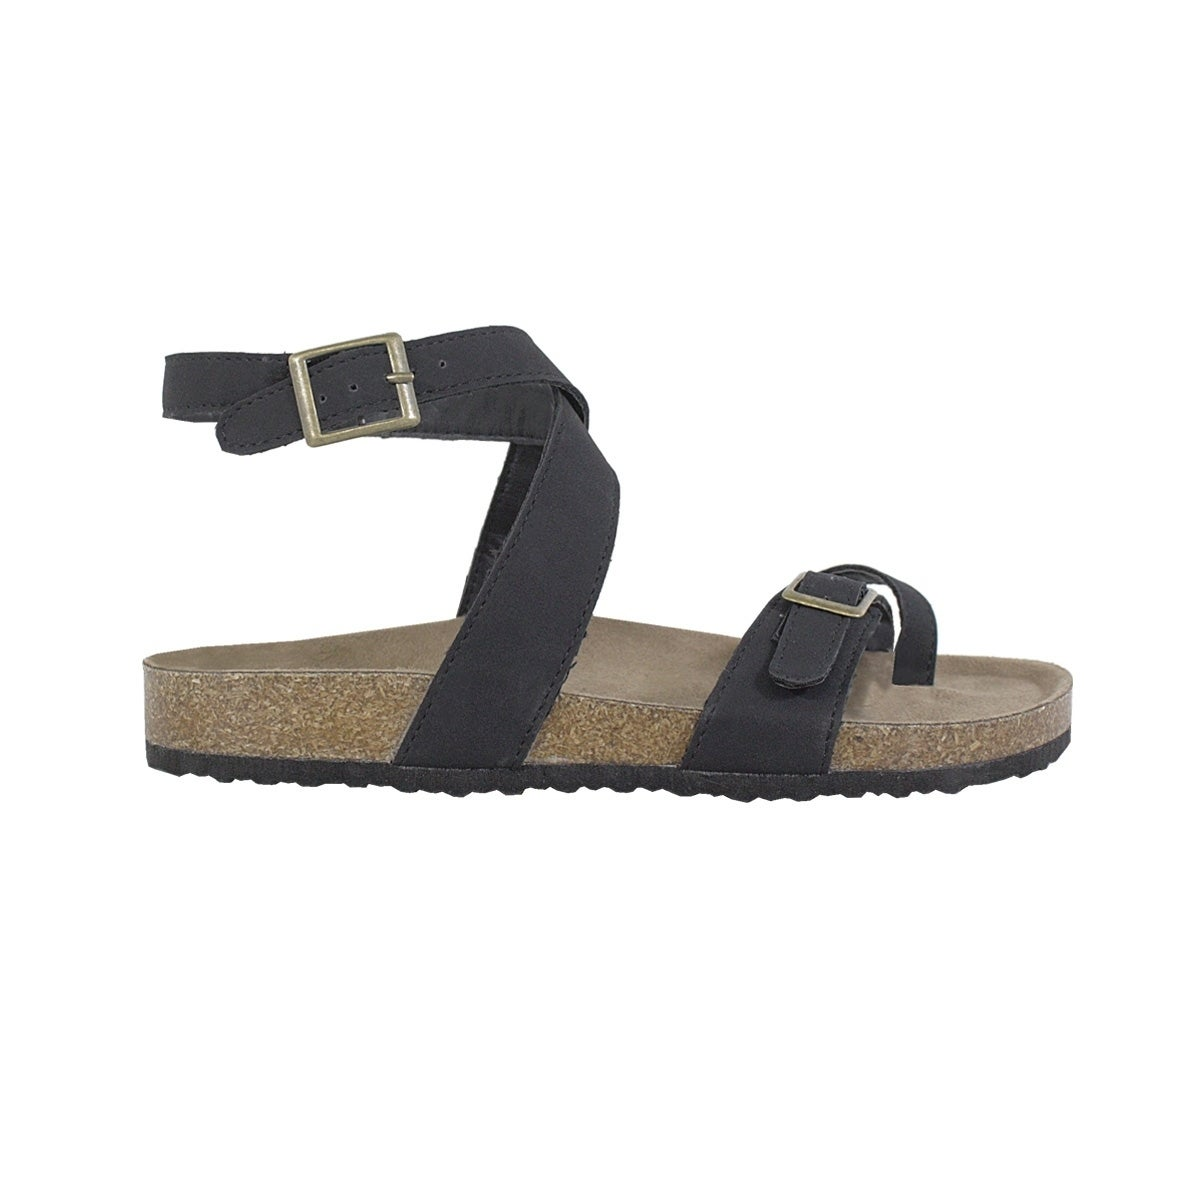 0488bcd9dc5 Shop Yoki-Gian-153 Women s Ankle Strap Sandal - Free Shipping On Orders  Over  45 - Overstock - 21946742